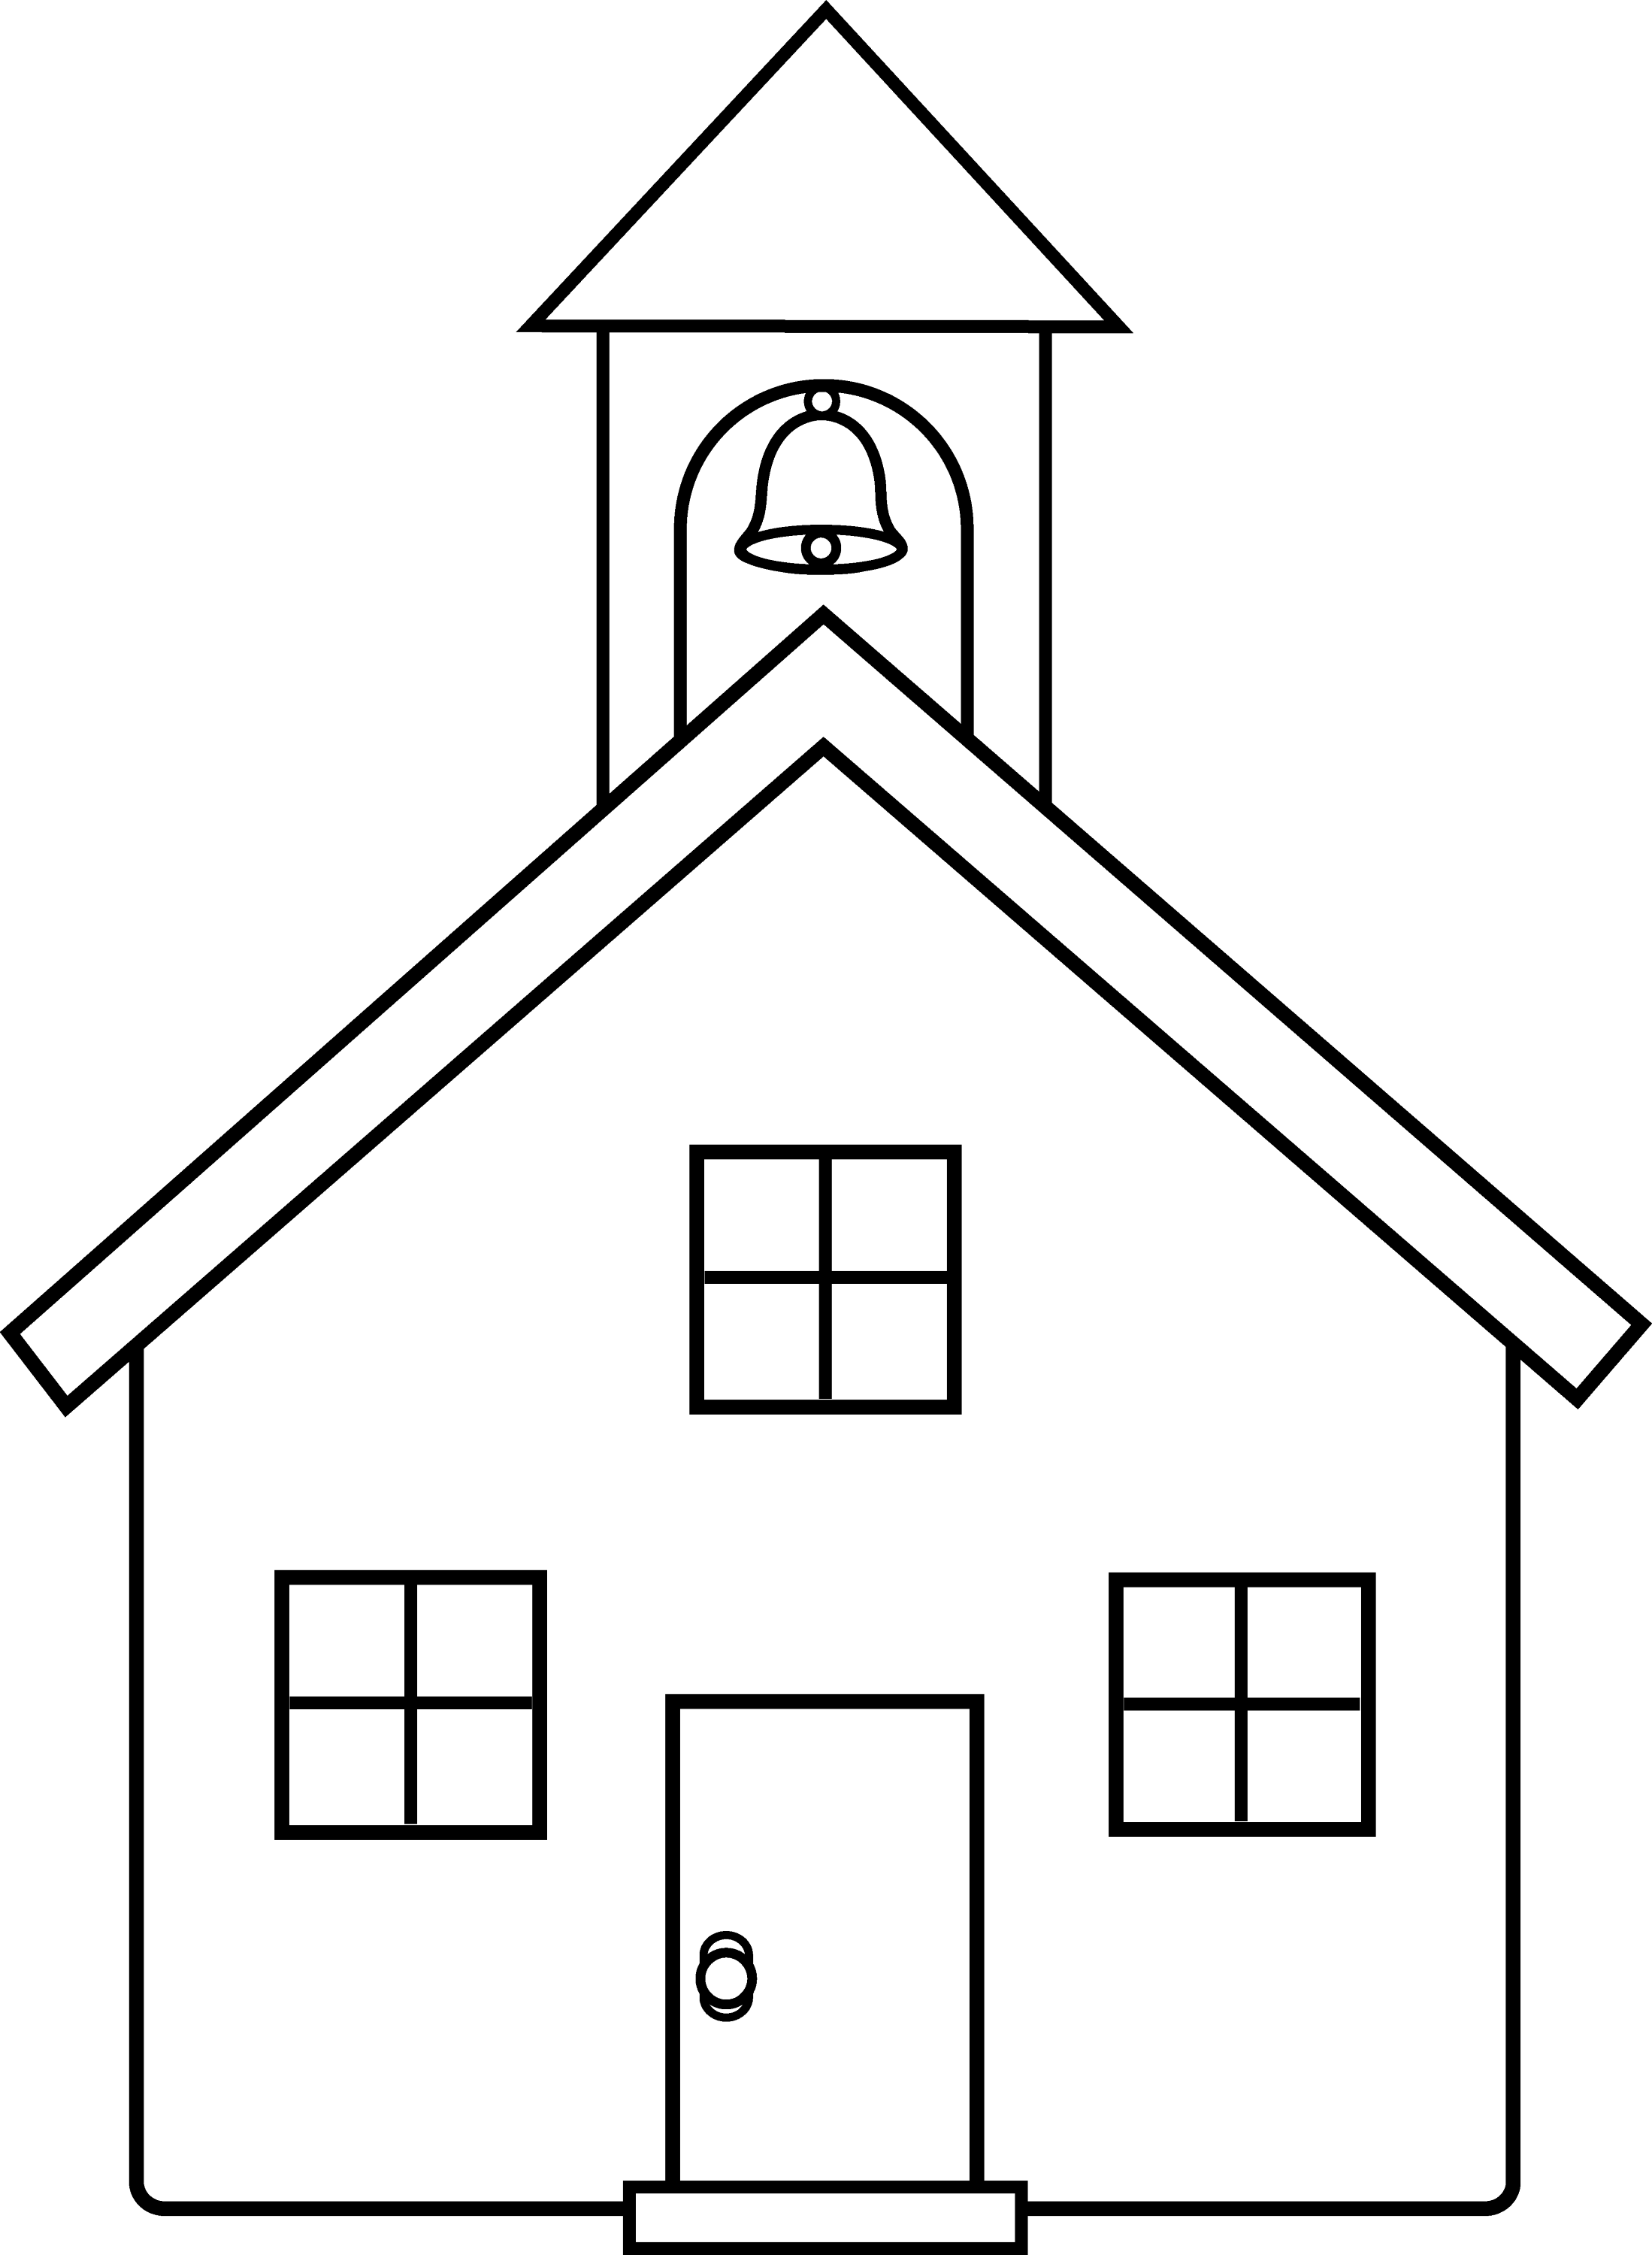 coloring outline of a house house outline stock vector image of home book black coloring outline a of house